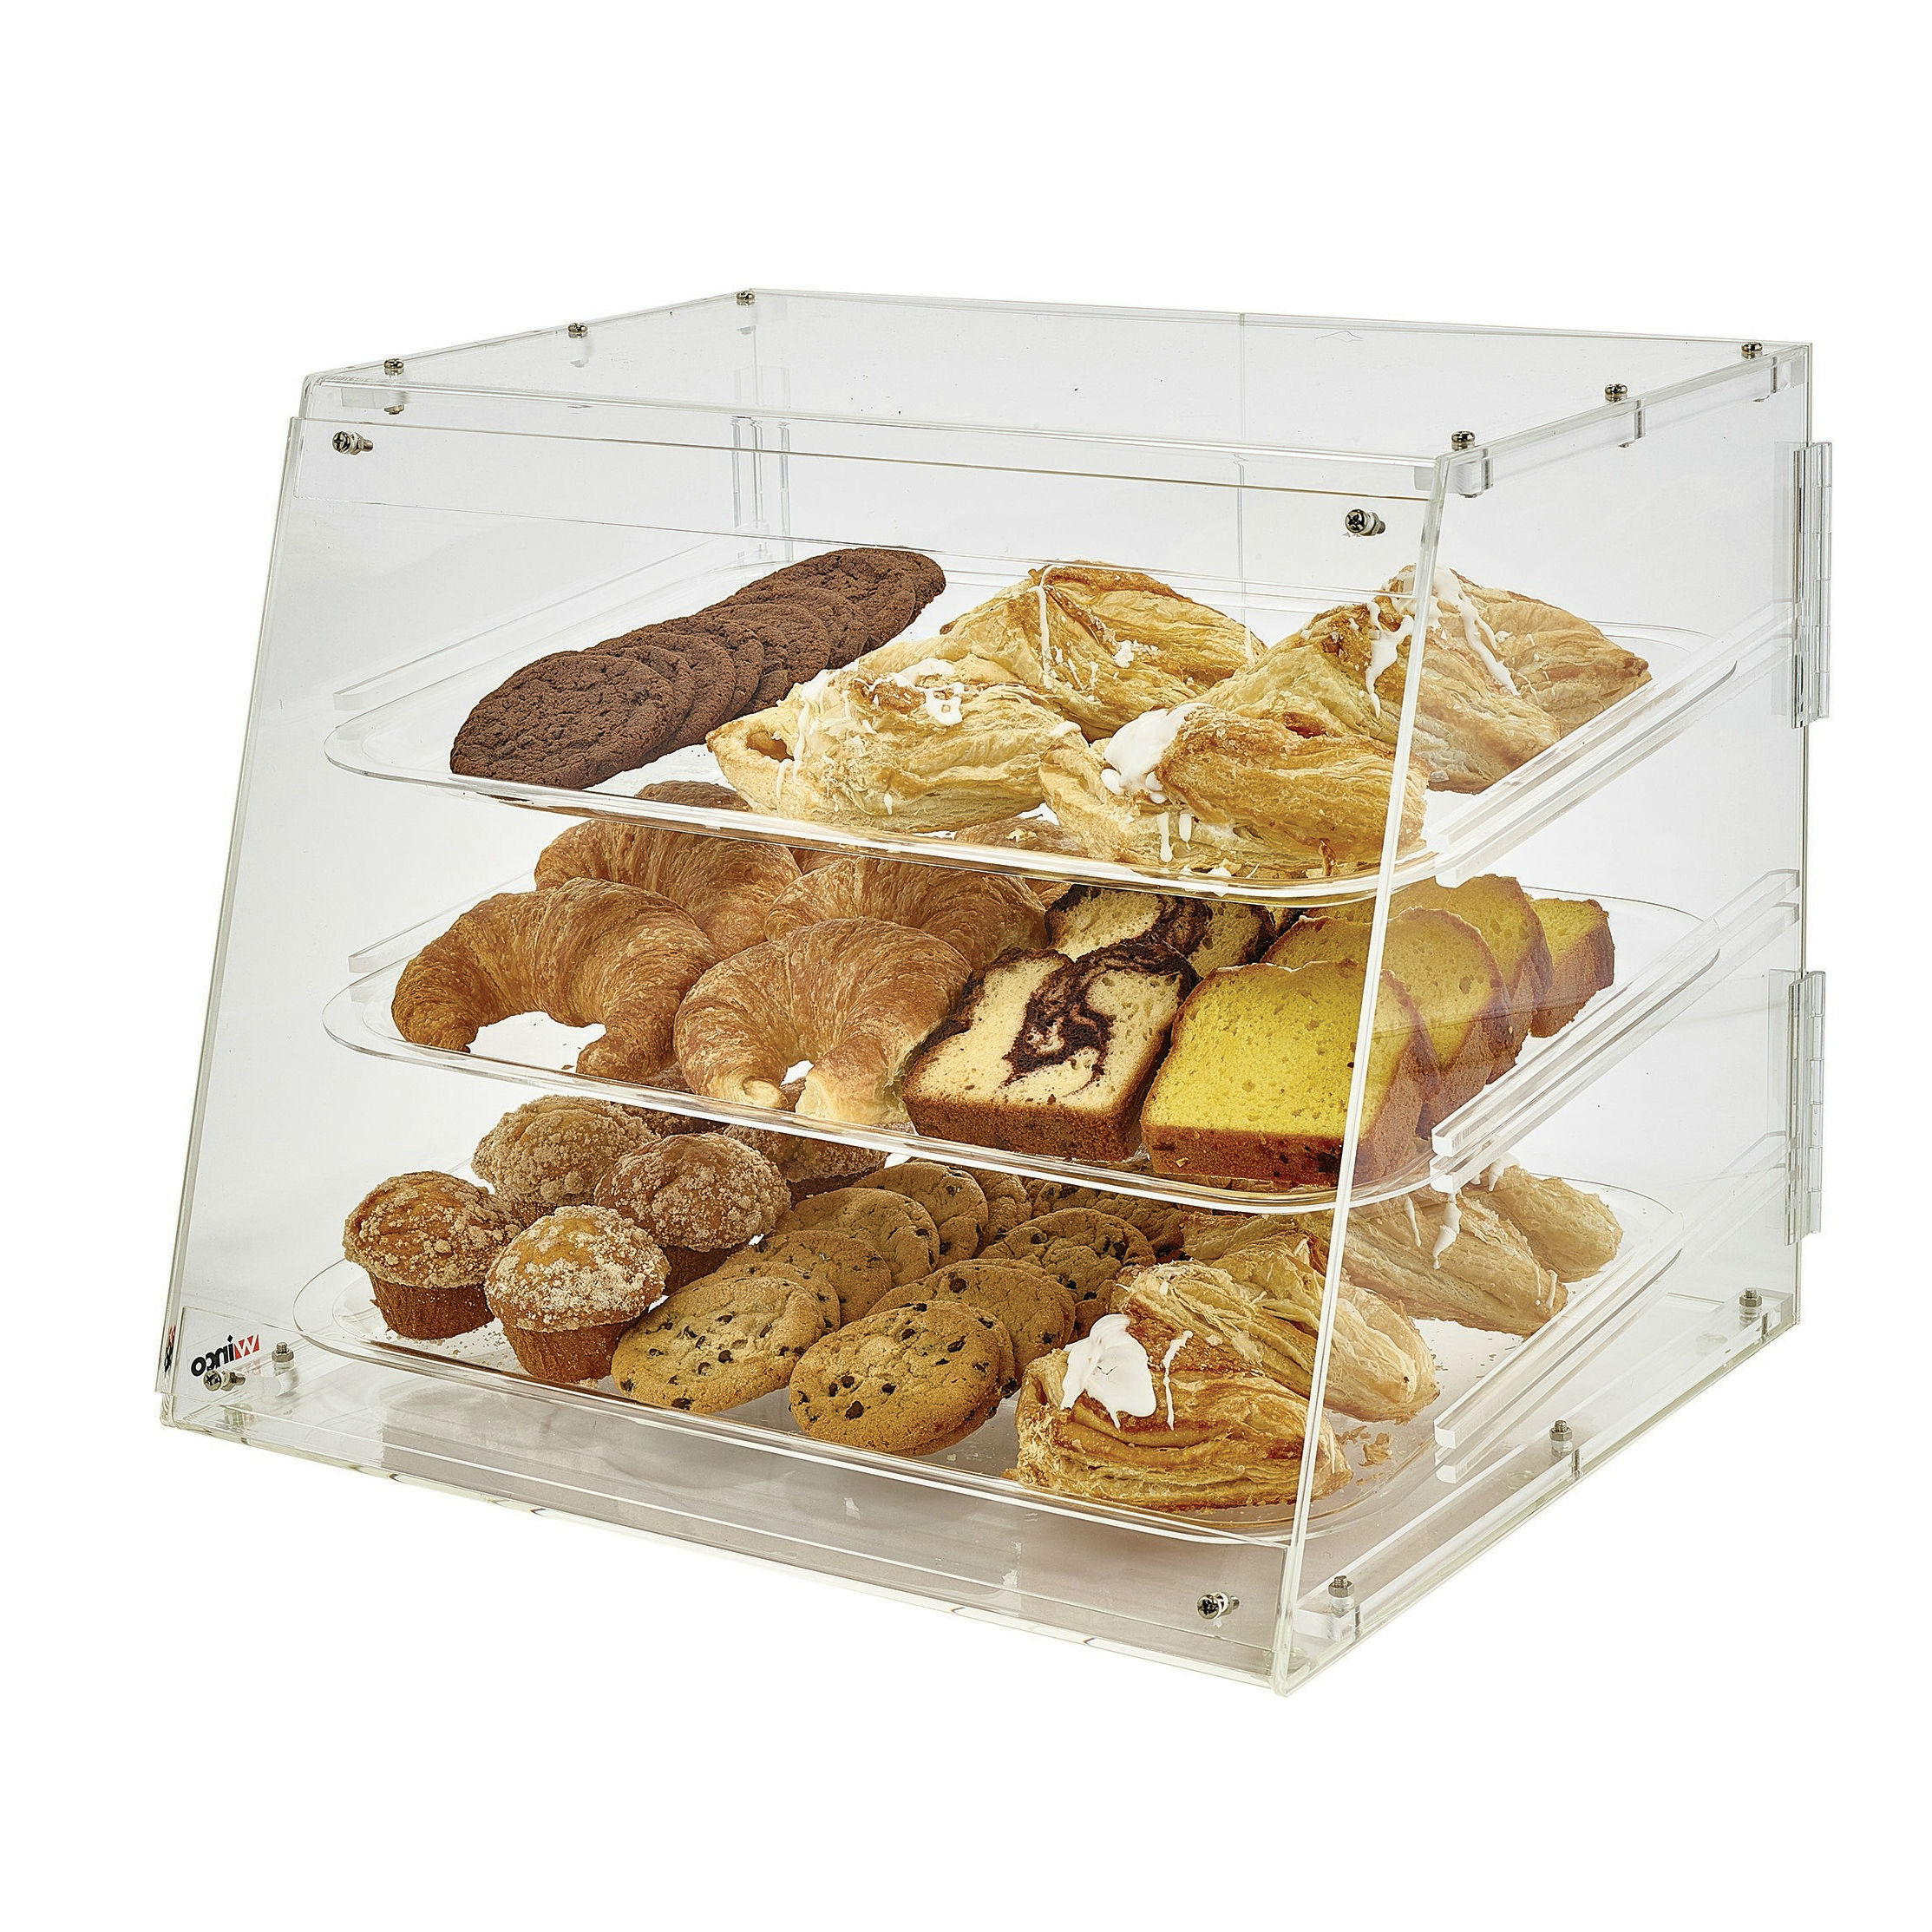 Winco ADC-3 Countertop Pastry Display Case, 3 Trays